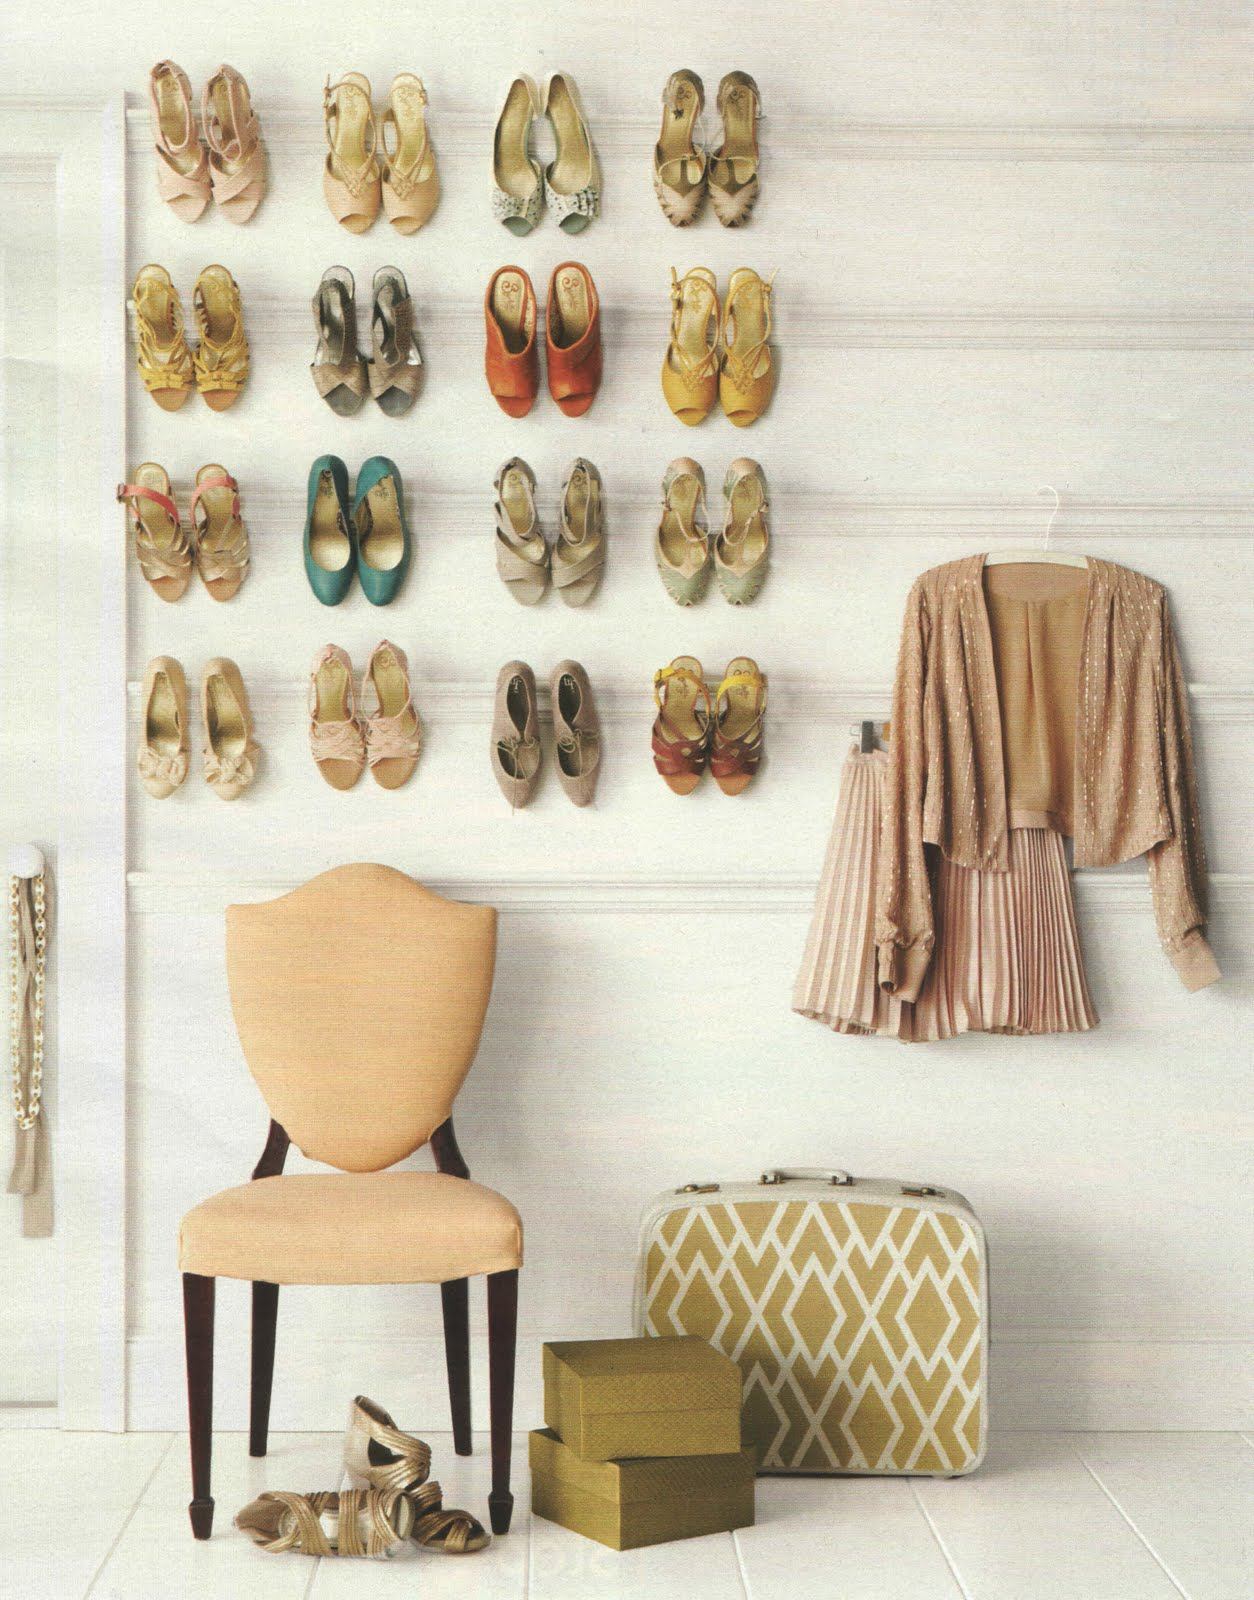 Lots of women's shoes hung on a wall by the heel using transparent rods